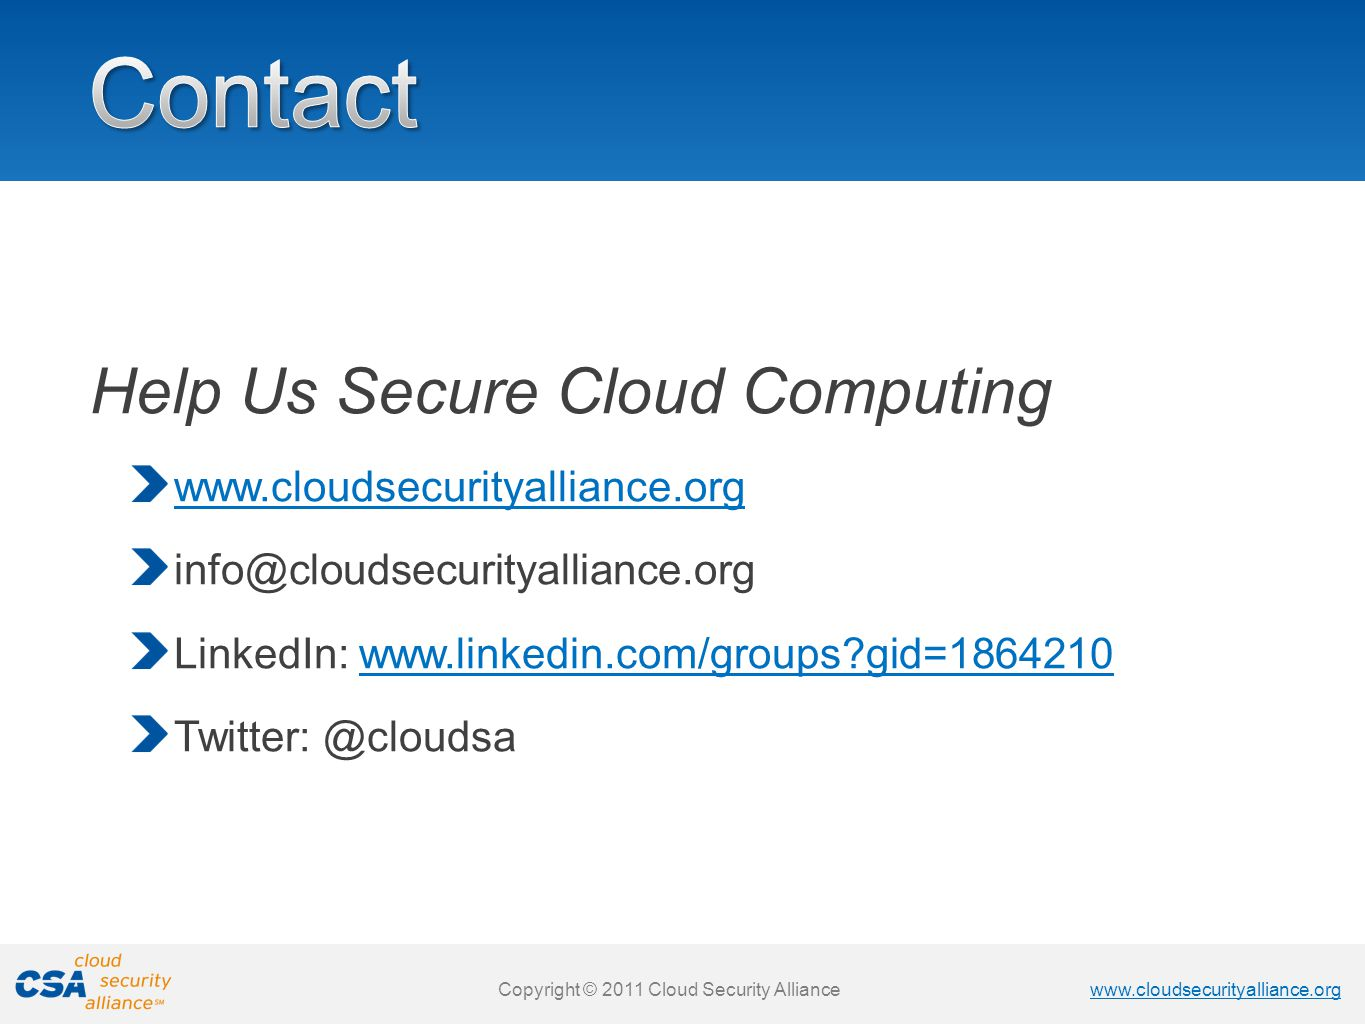 www.cloudsecurityalliance.org Copyright © 2011 Cloud Security Alliance www.cloudsecurityalliance.org Copyright © 2011 Cloud Security Alliance Help Us Secure Cloud Computing www.cloudsecurityalliance.org info@cloudsecurityalliance.org LinkedIn: www.linkedin.com/groups gid=1864210www.linkedin.com/groups gid=1864210 Twitter: @cloudsa